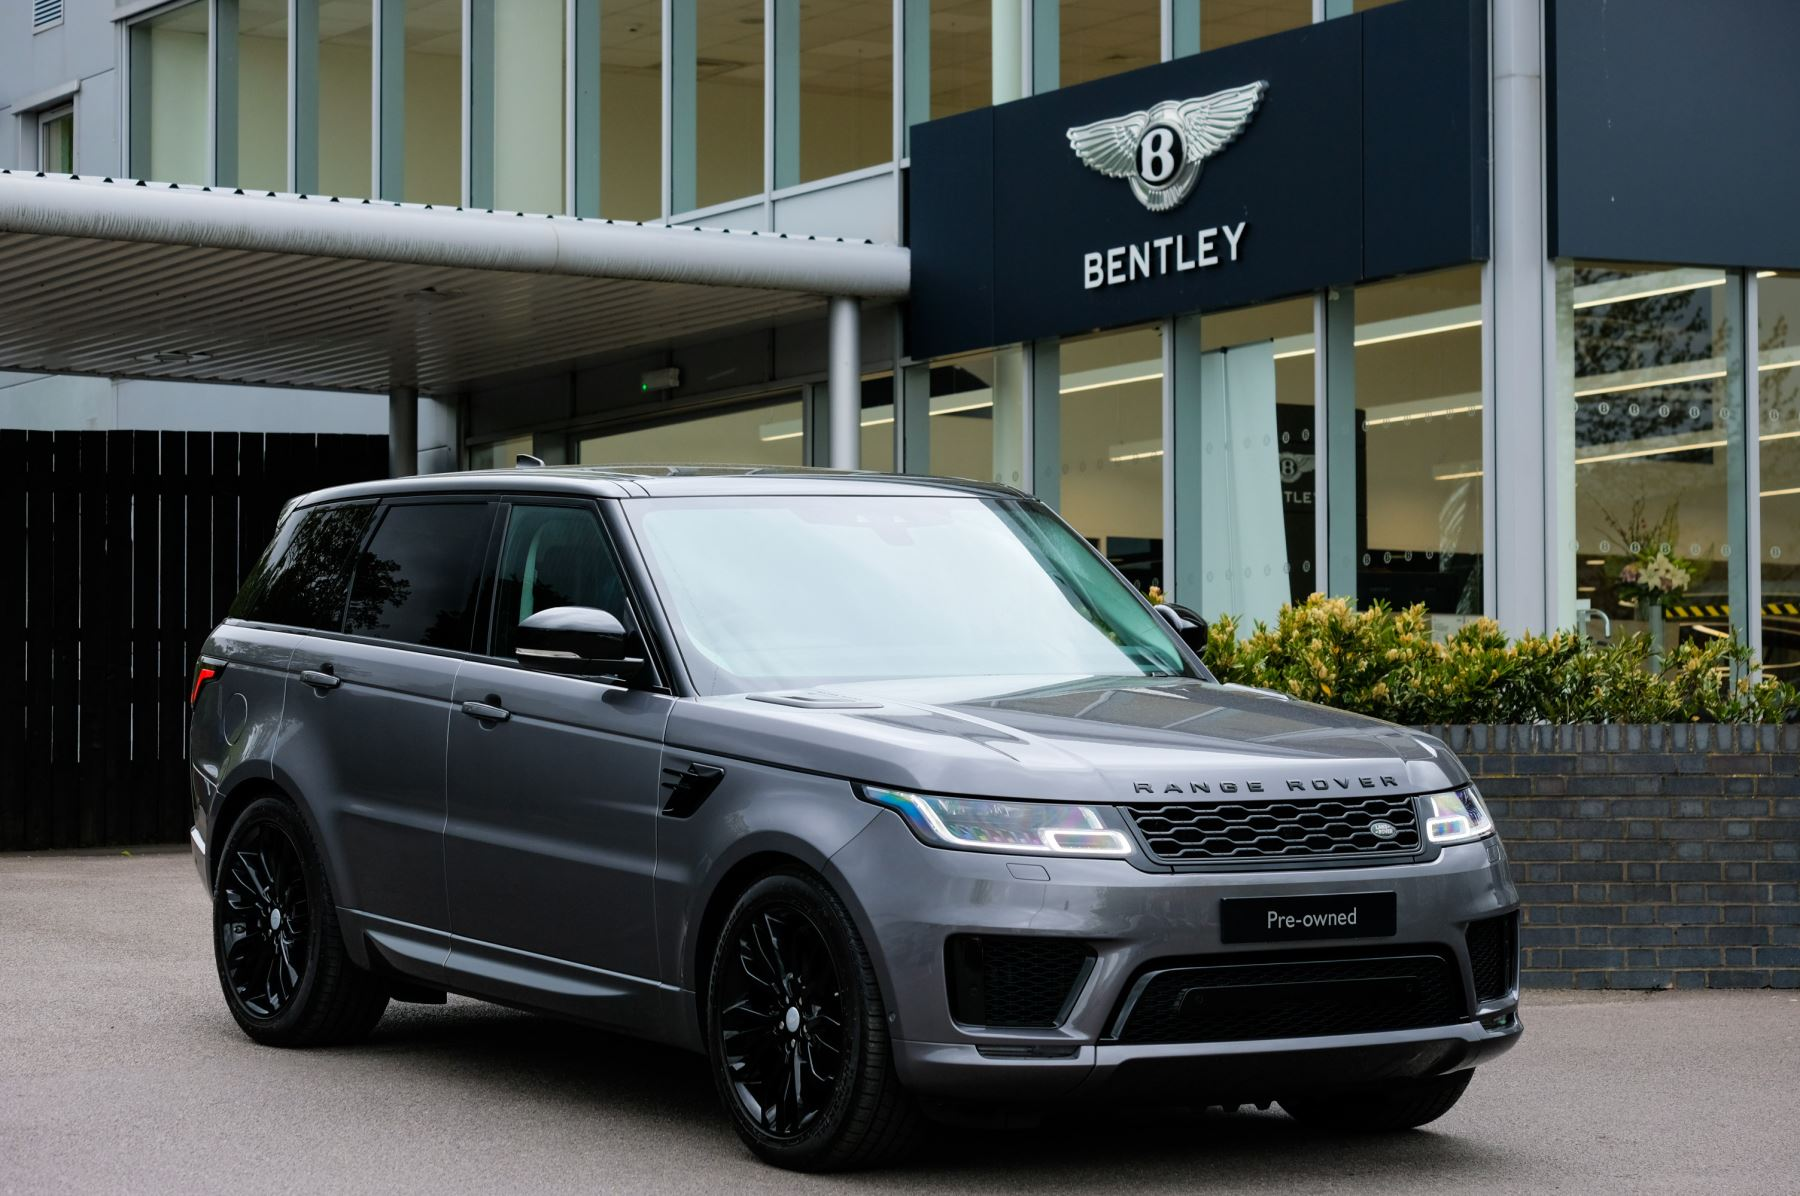 Land Rover Range Rover Sport 3.0 SDV6 Autobiography Dynamic 5dr [7 Seat] - Rear Seat Entertainment - 21 Inch Alloys image 37